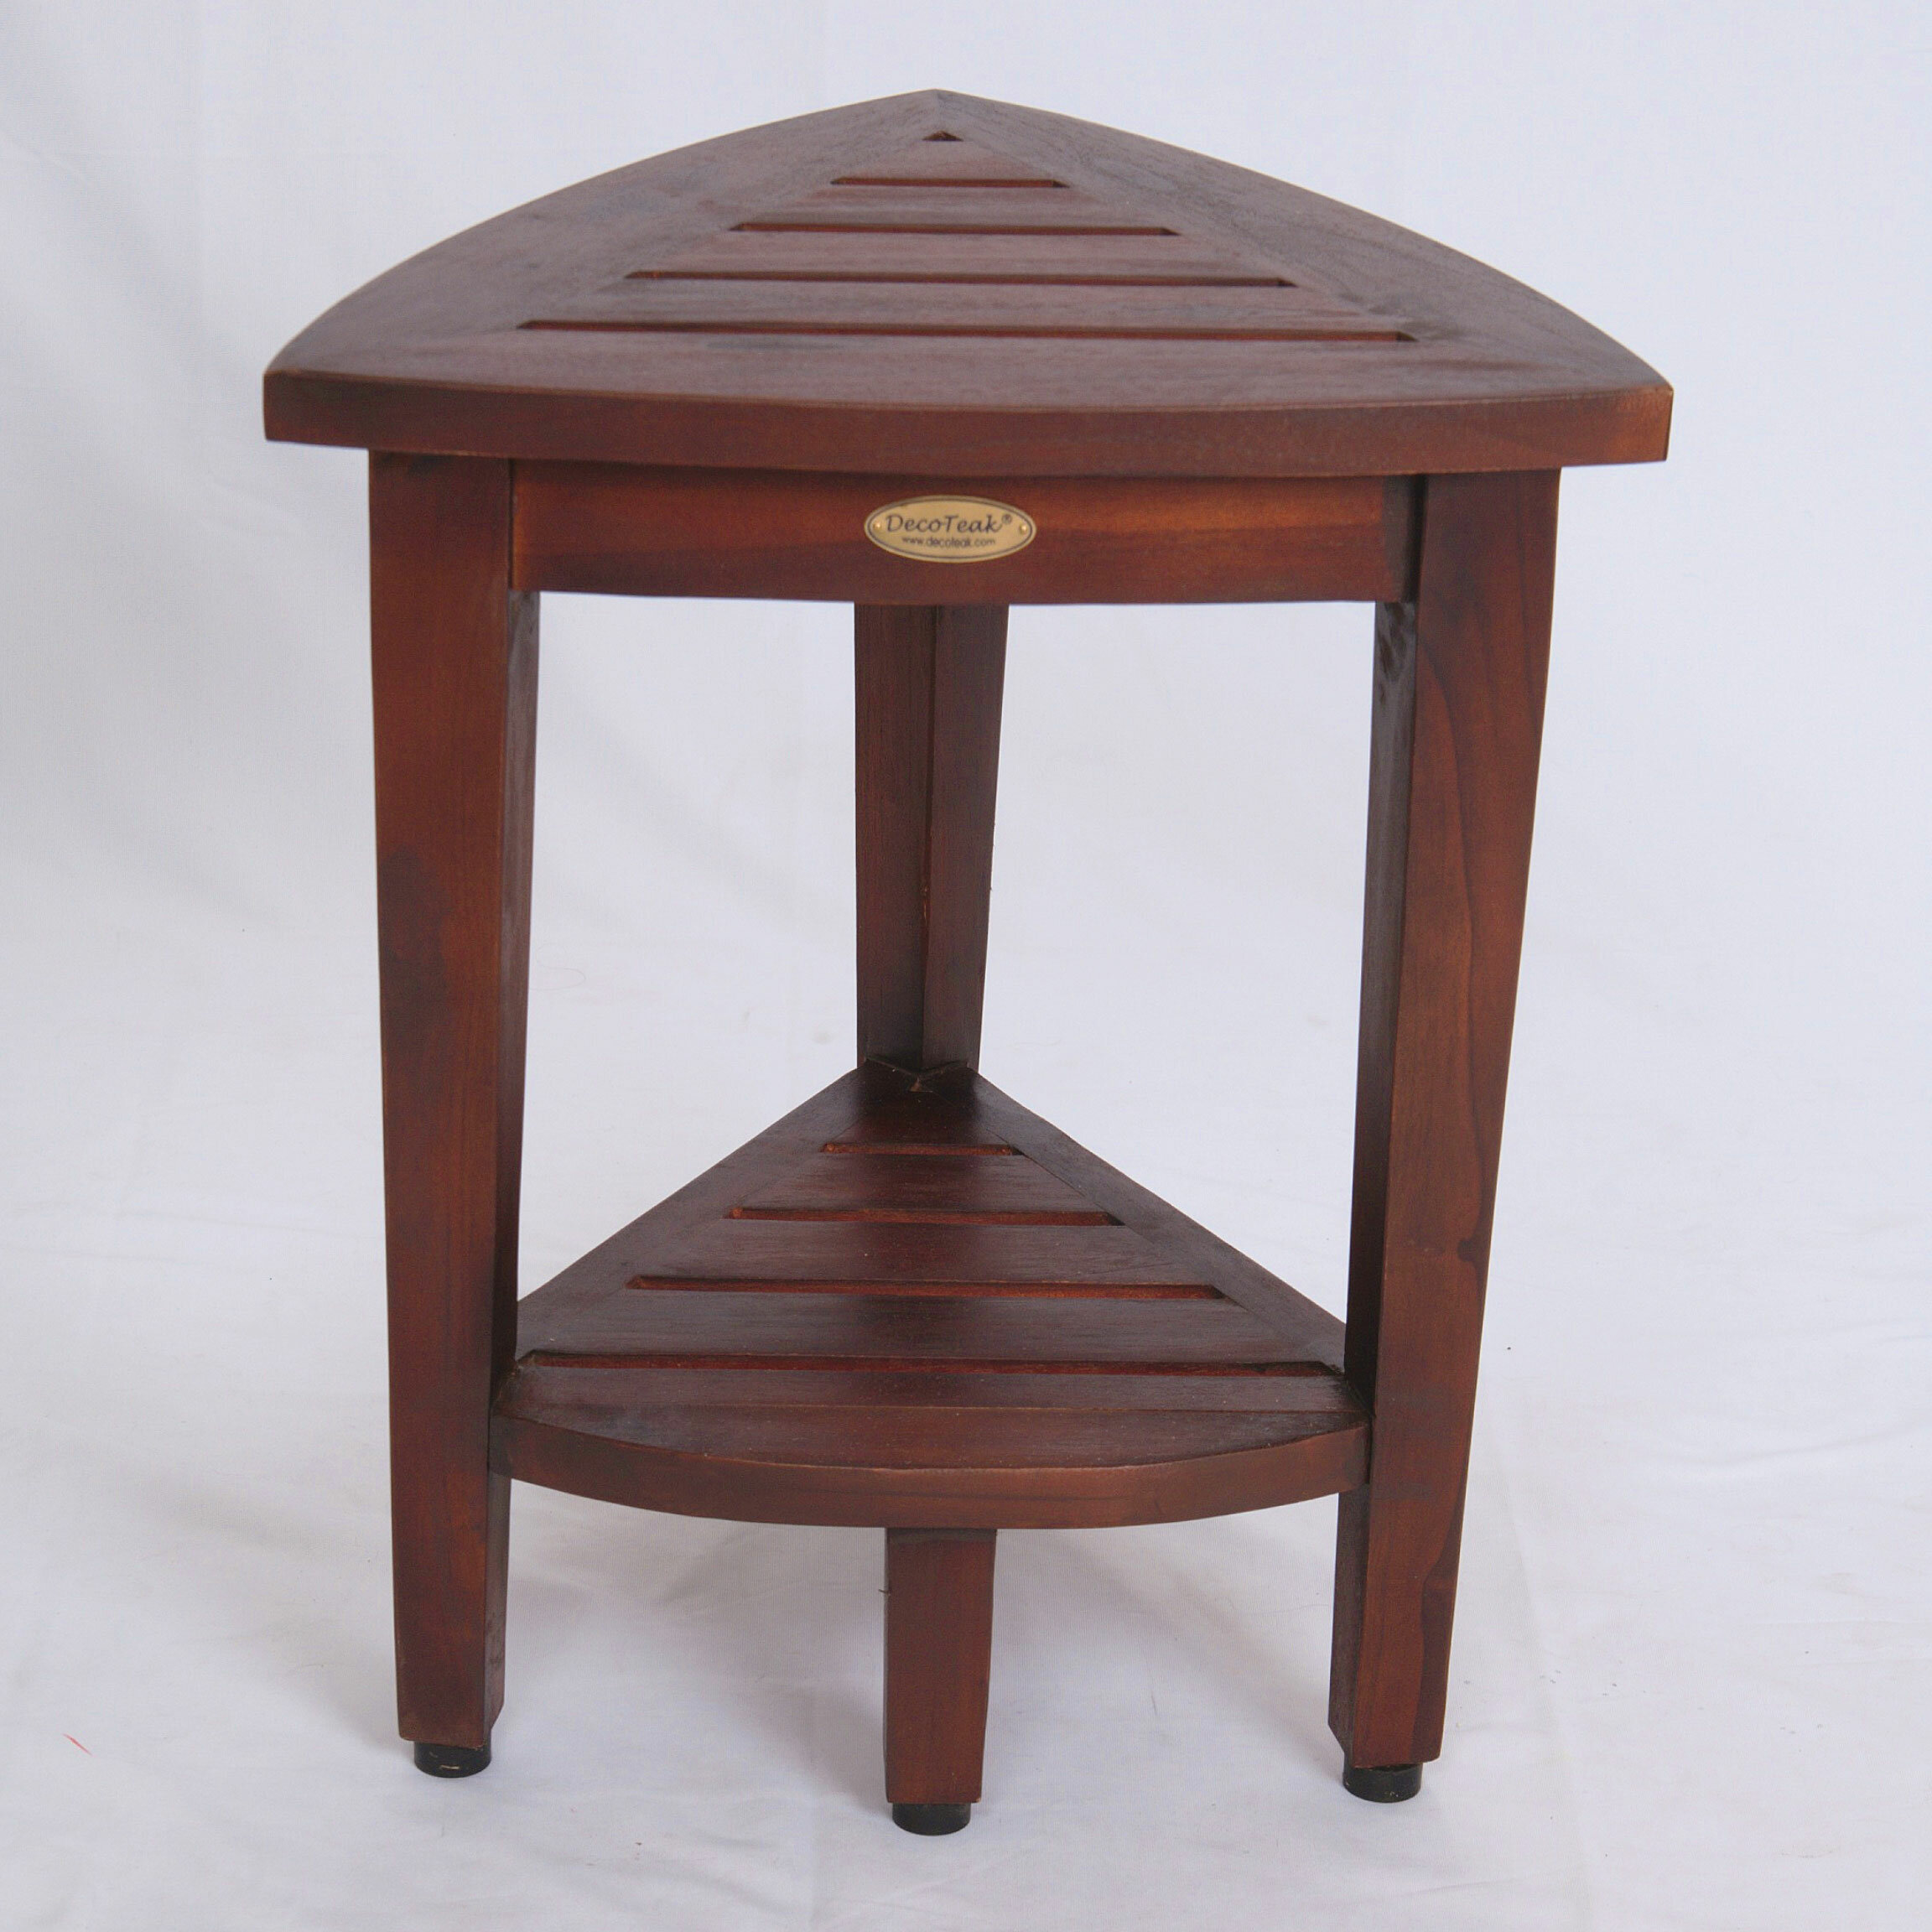 Decoteak Oasis Compact Teak Corner Shower Seat U0026 Reviews | Wayfair